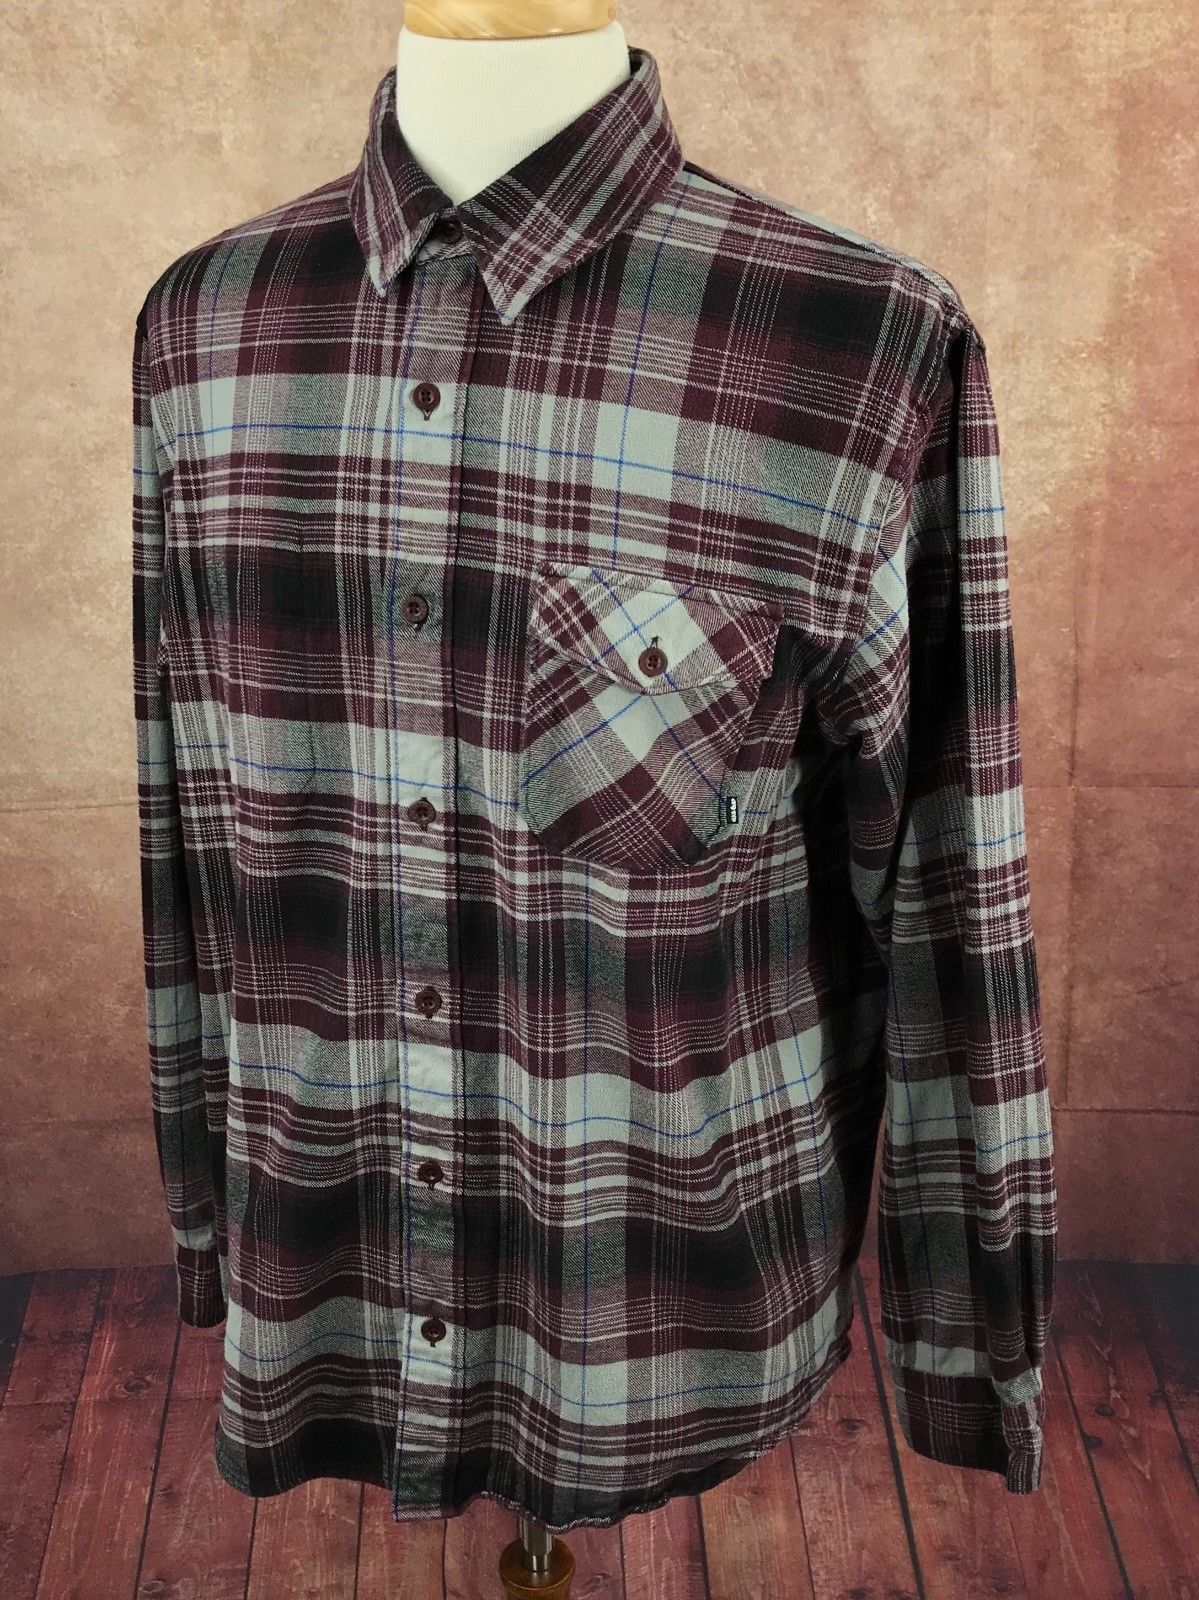 0abd3796 Nike 6.0 Button Front Long Sleeve Flannel and similar items. 57